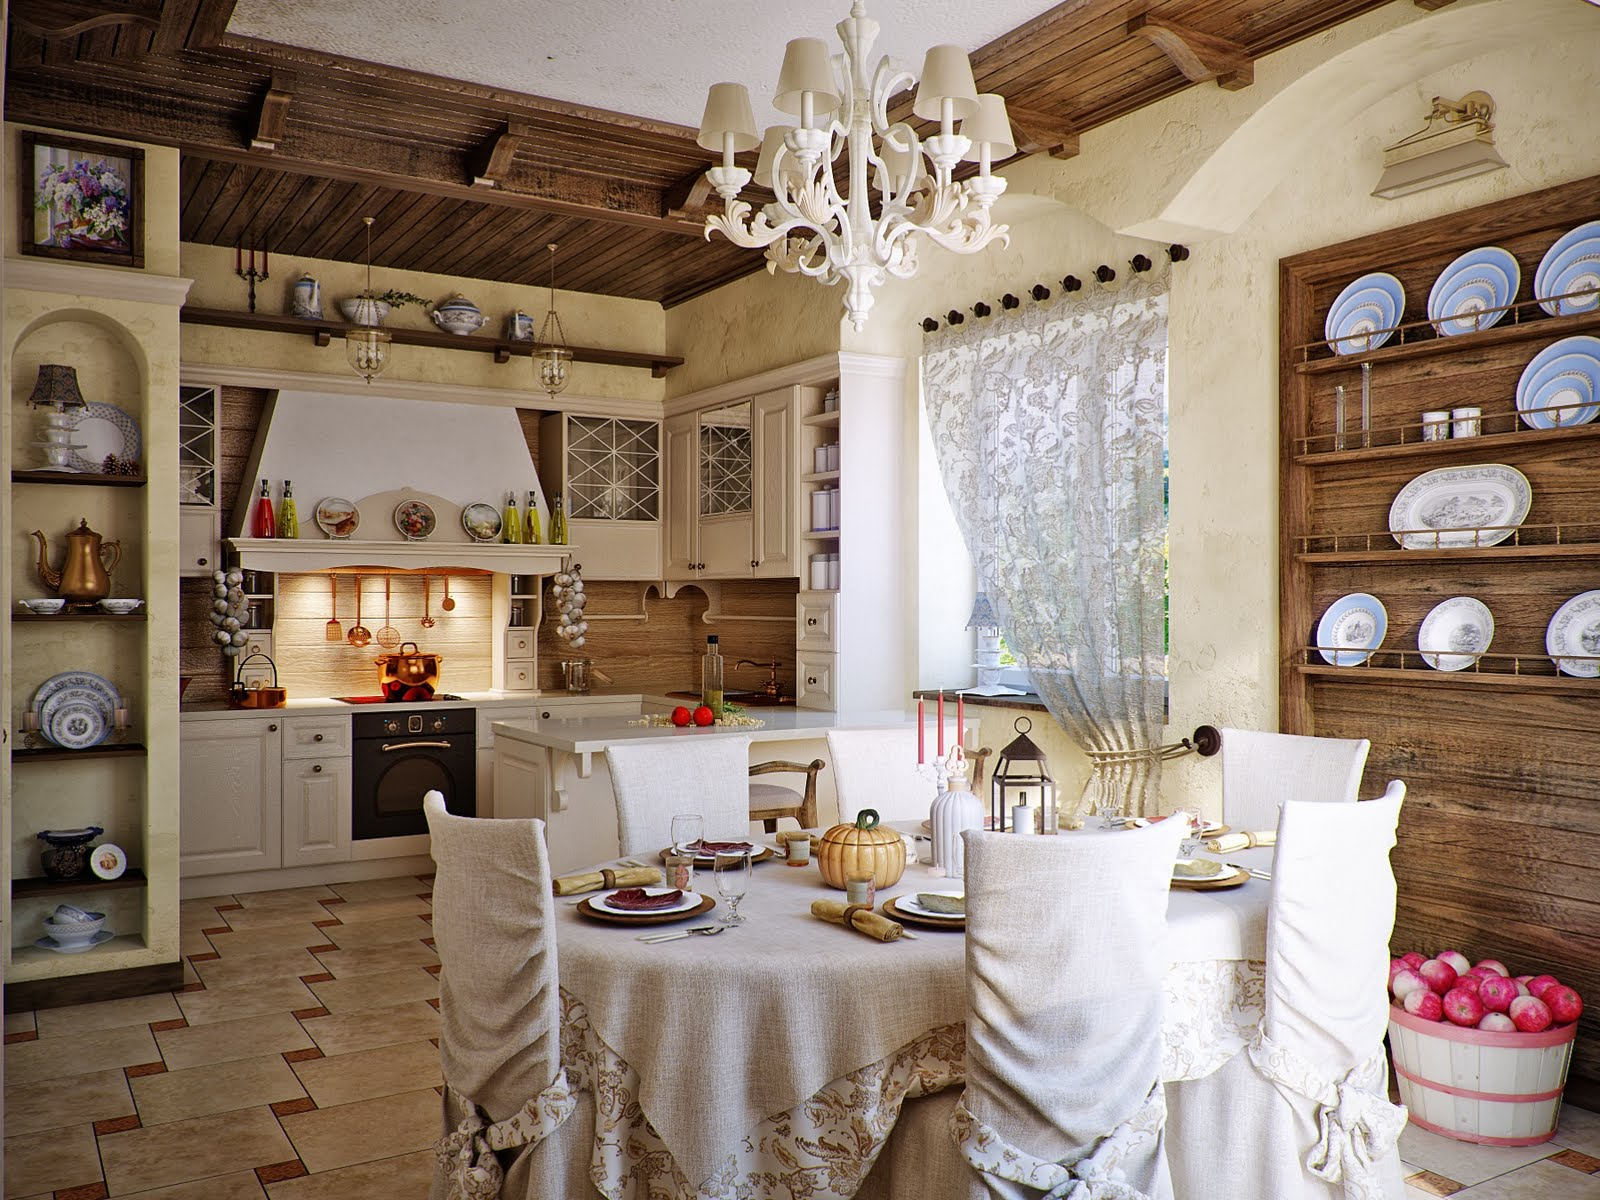 Kitchen Design Country attractive country kitchen designs - ideas that inspire you